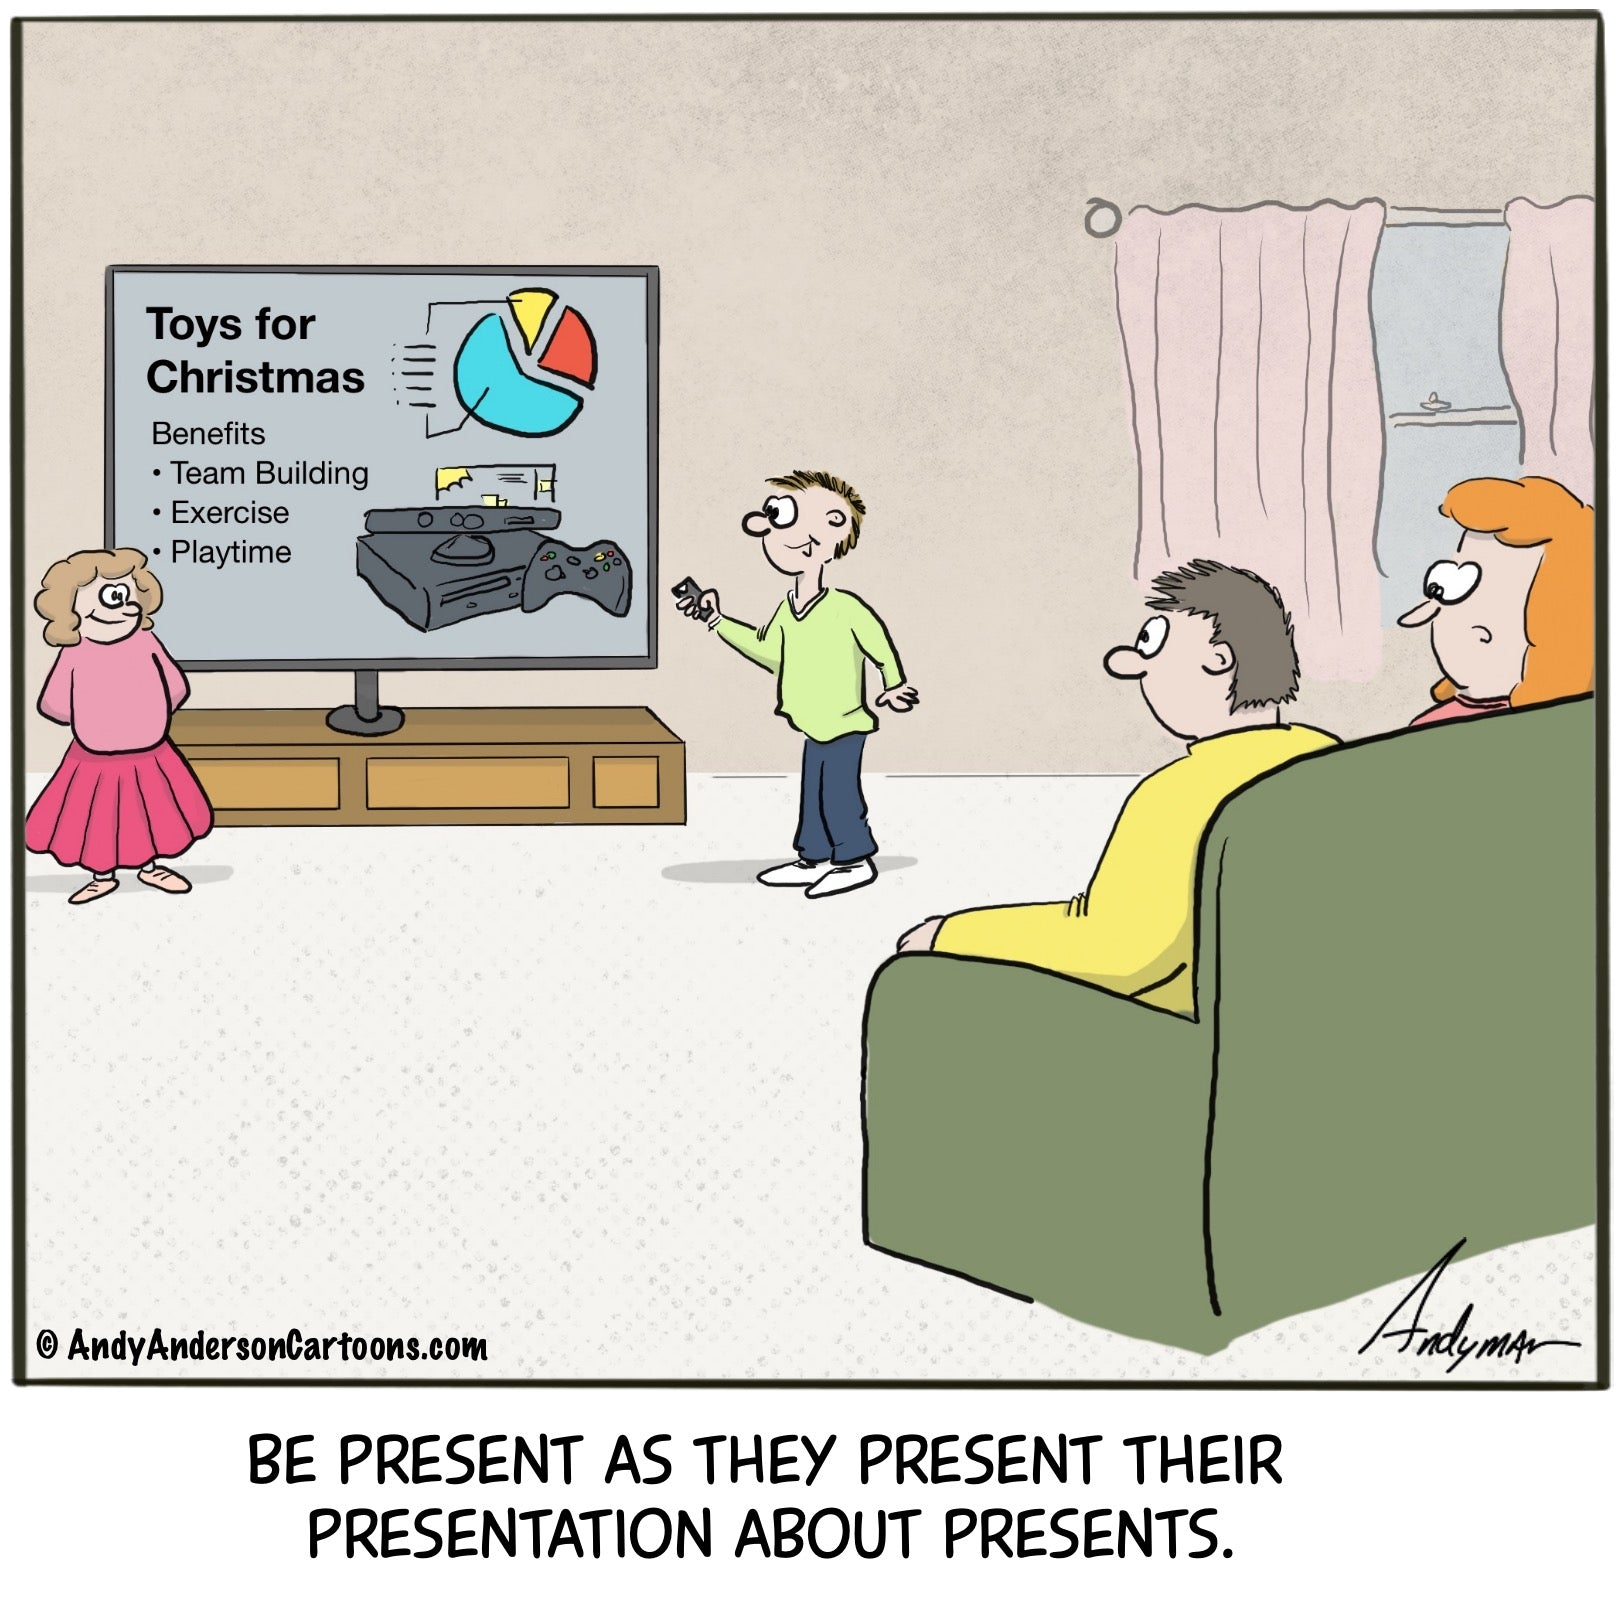 Christmas presentation cartoon by Andy Anderson